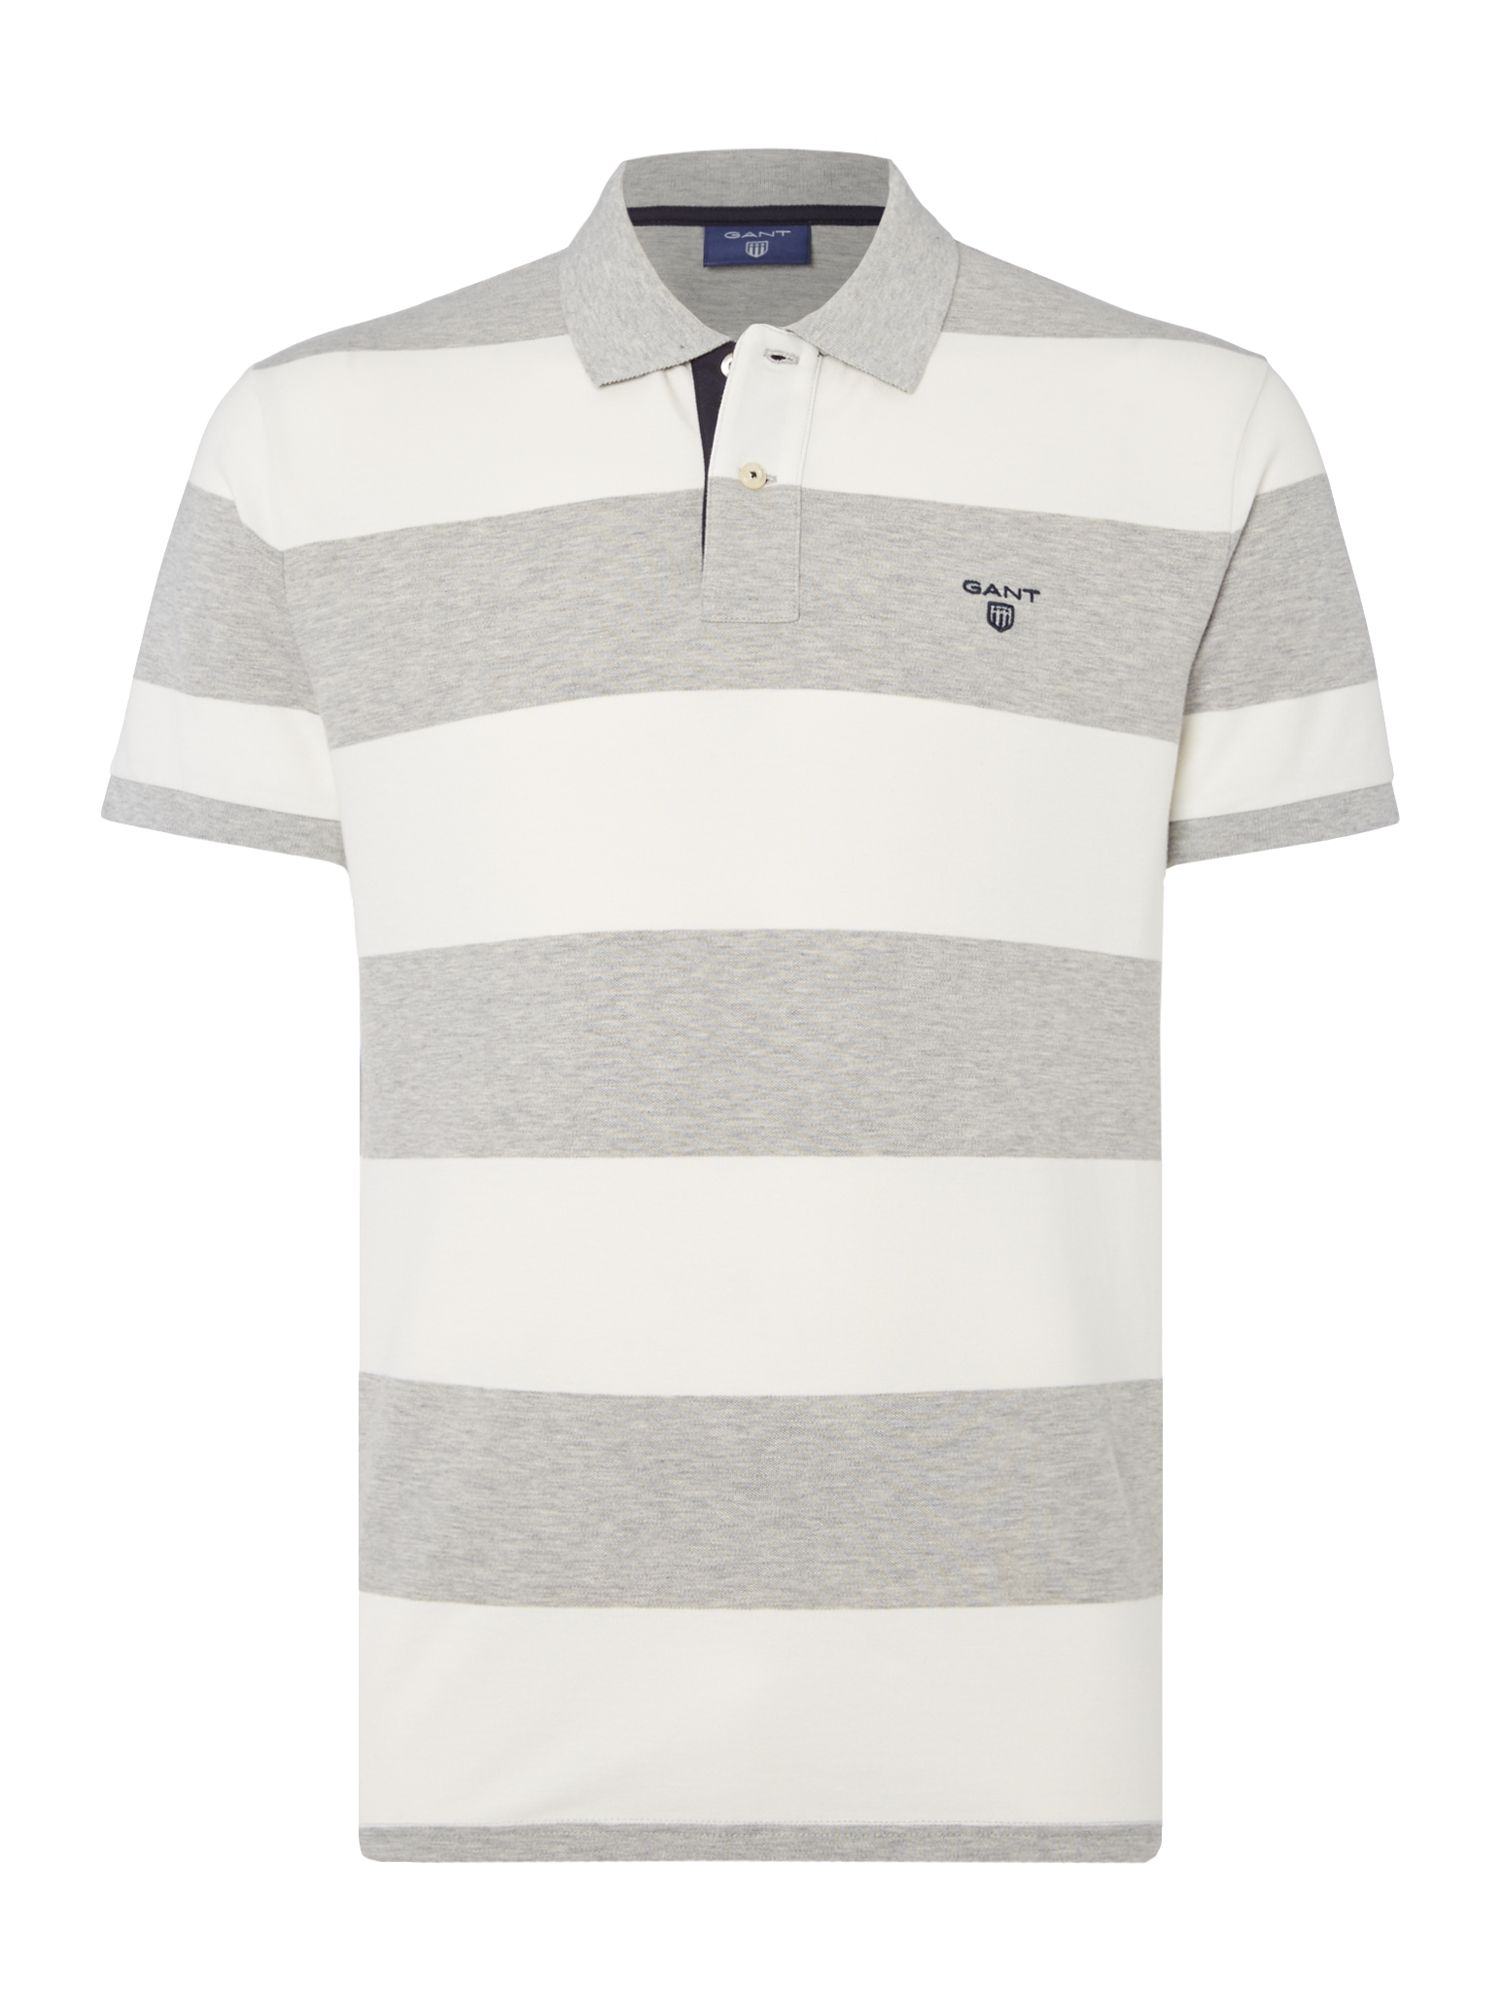 Men's Gant Short Sleeve Bar Stripe Polo Shirt, Grey